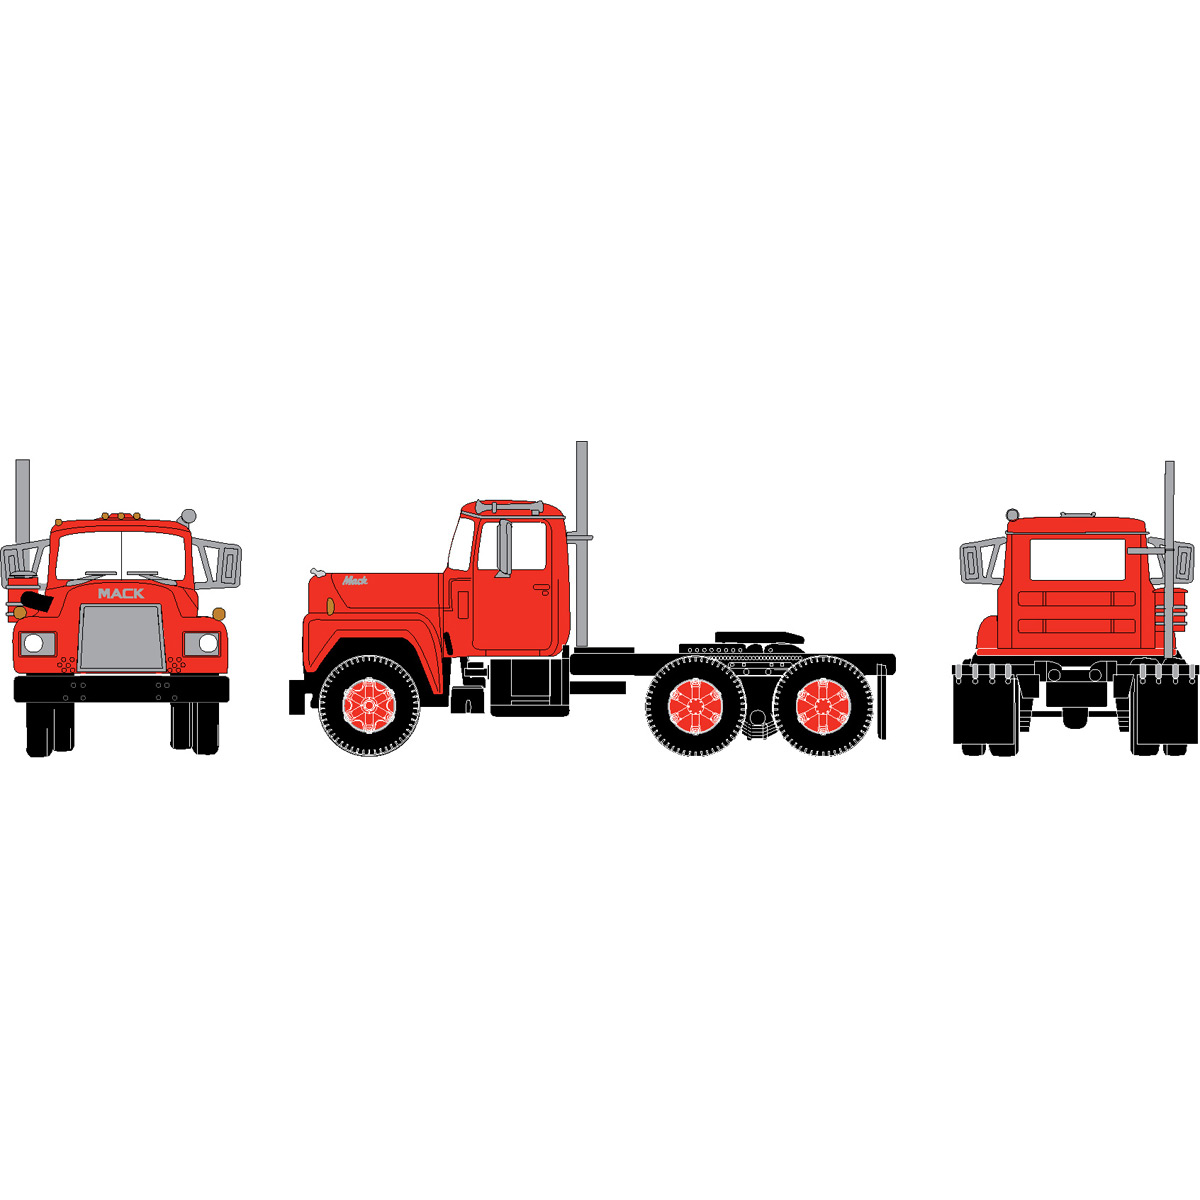 Athearn N Scale 3 Axle Tractor : N rtr mack r tractor w axle red ath athearn trains